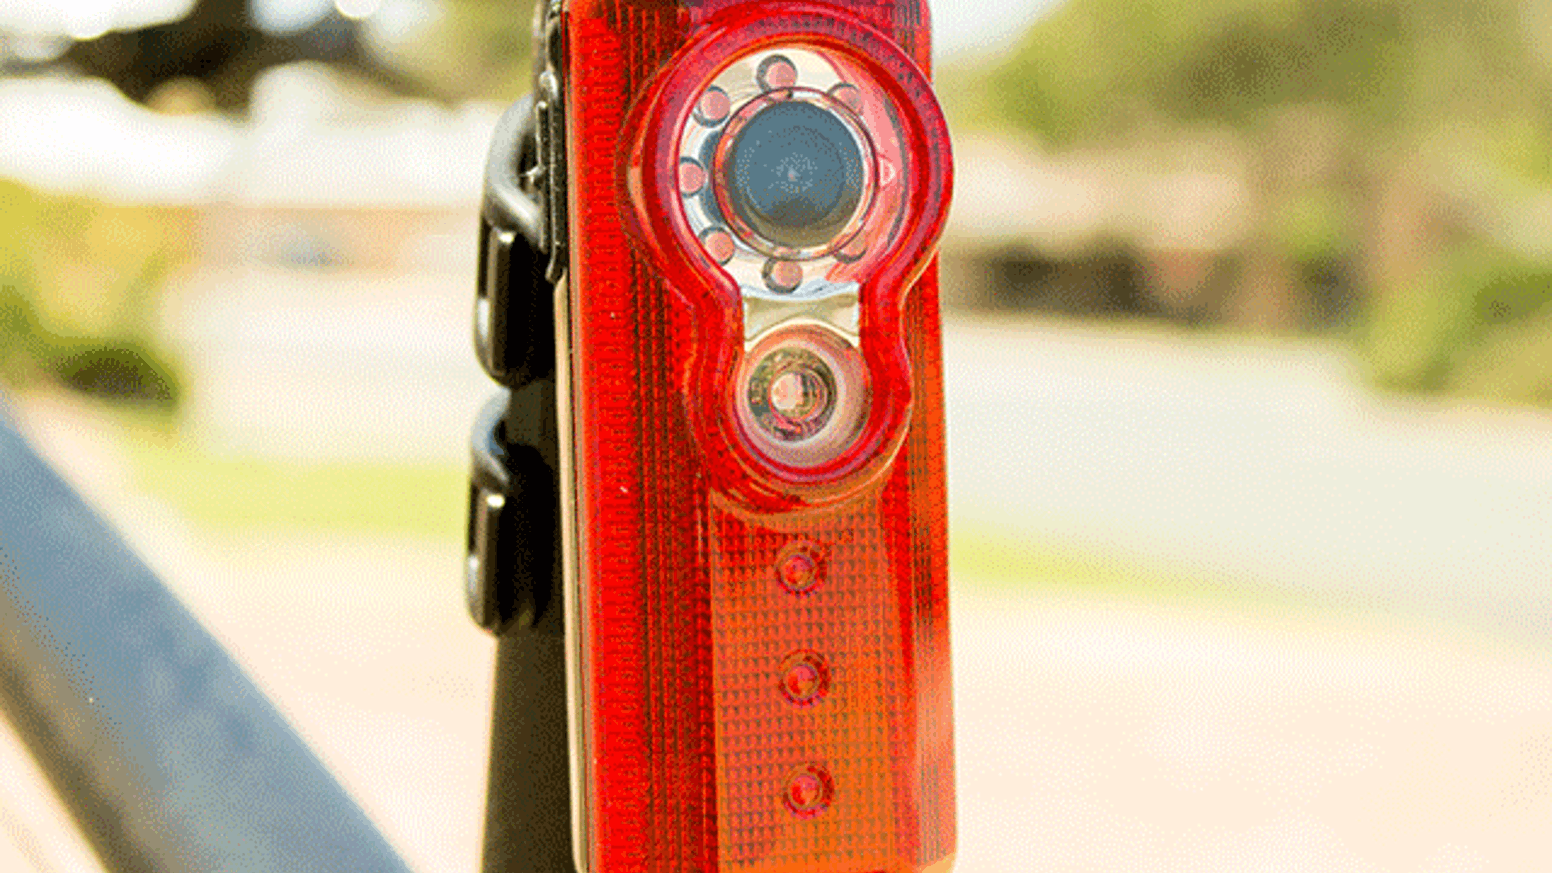 World first bike camera & tail-light accessory to record what happens behind you so you can enjoy the ride ahead.